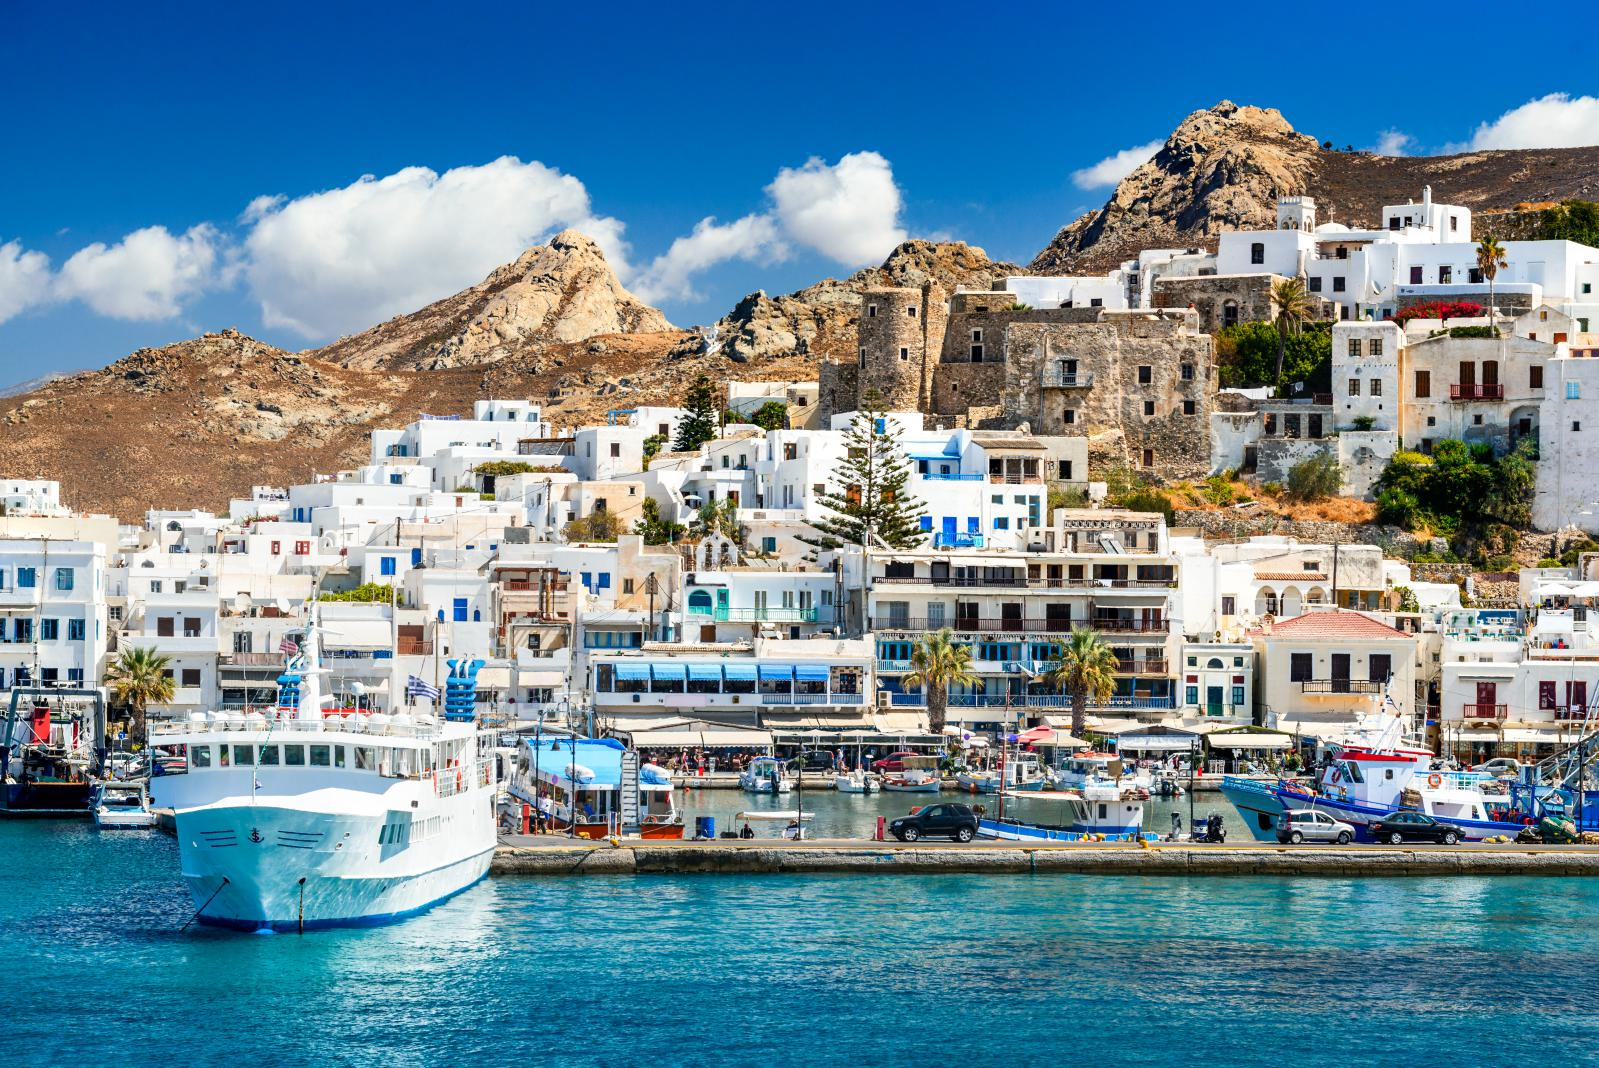 Naxos port with boat and white houses